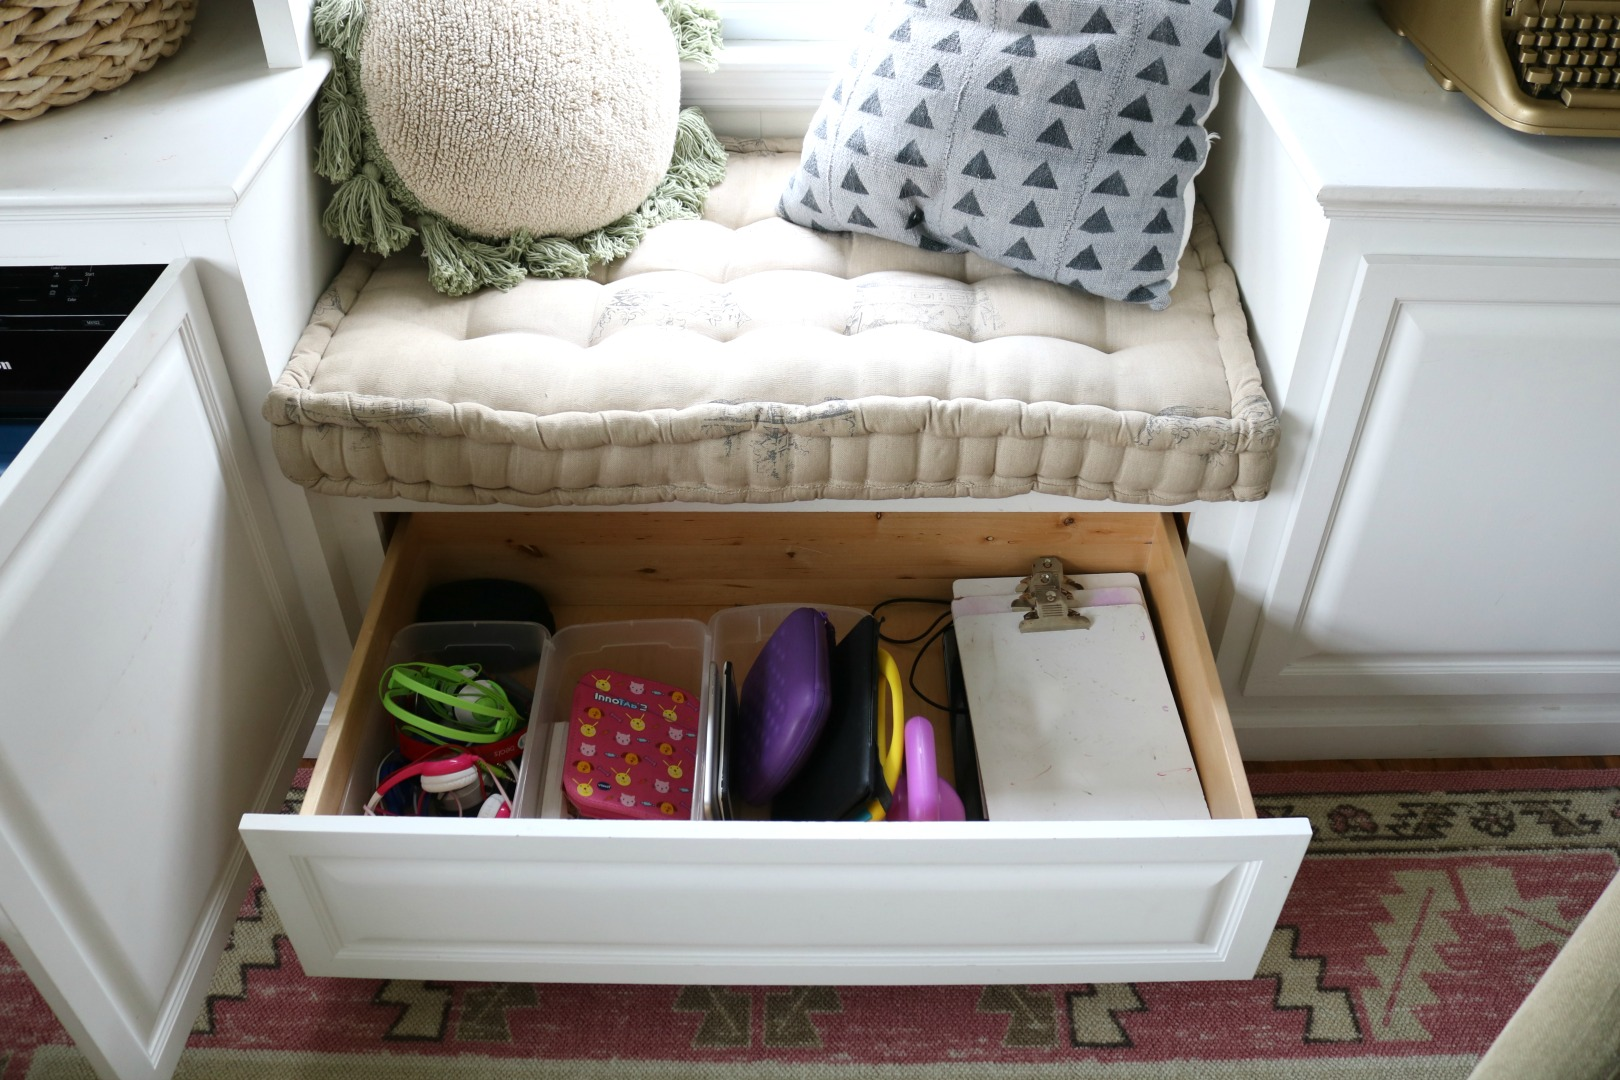 Small Space Living Series Organizing Hacks In Our 1200